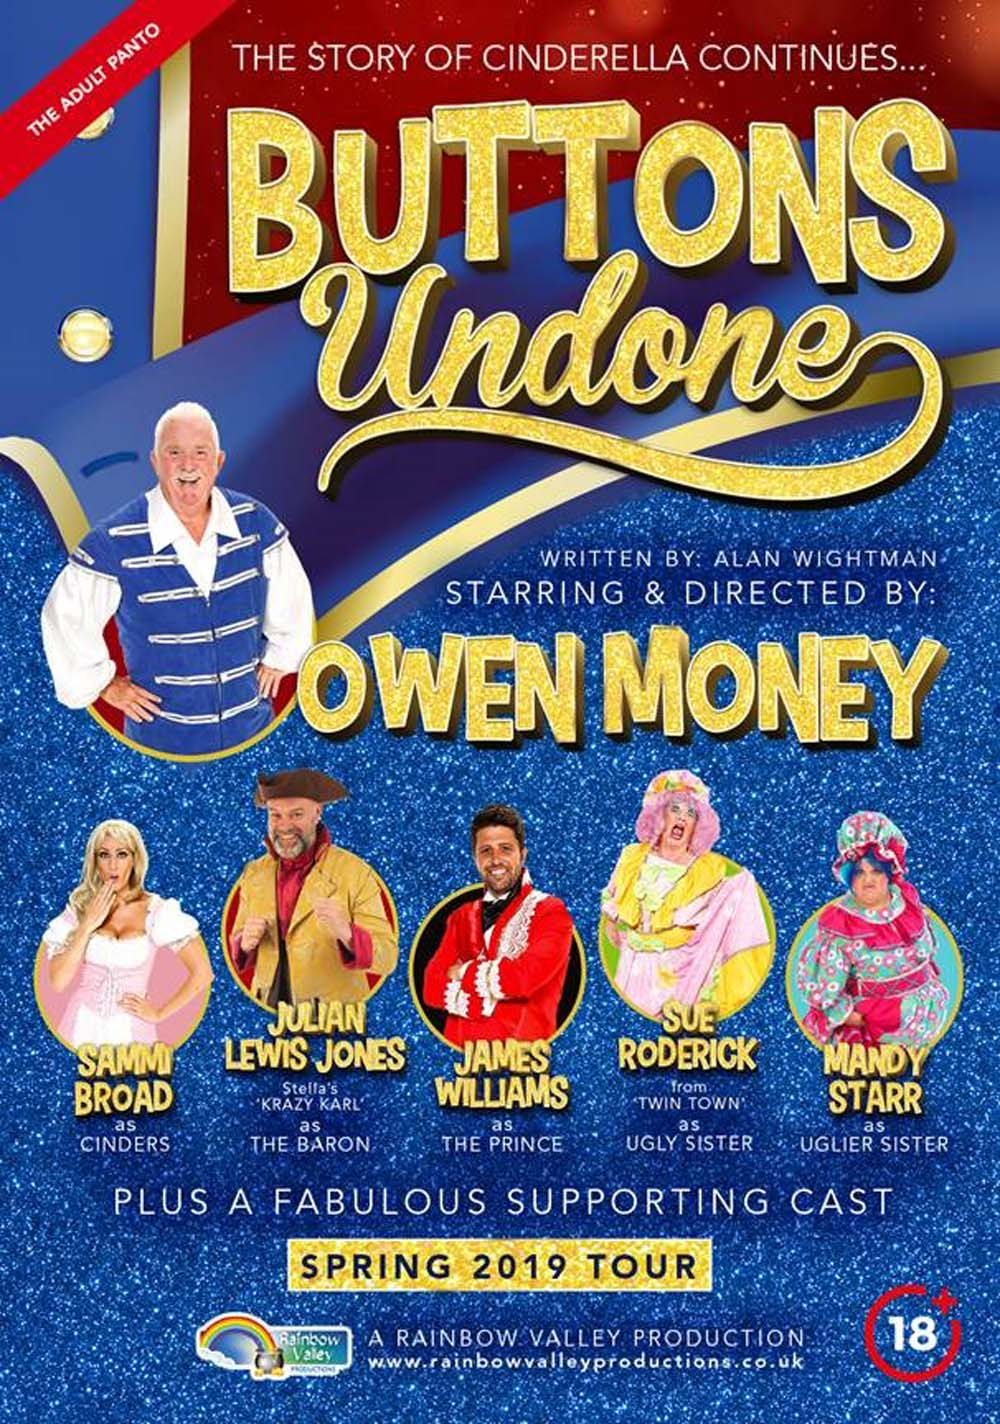 Buttons Undone comes to Newport's Riverfront on June 14, 2019